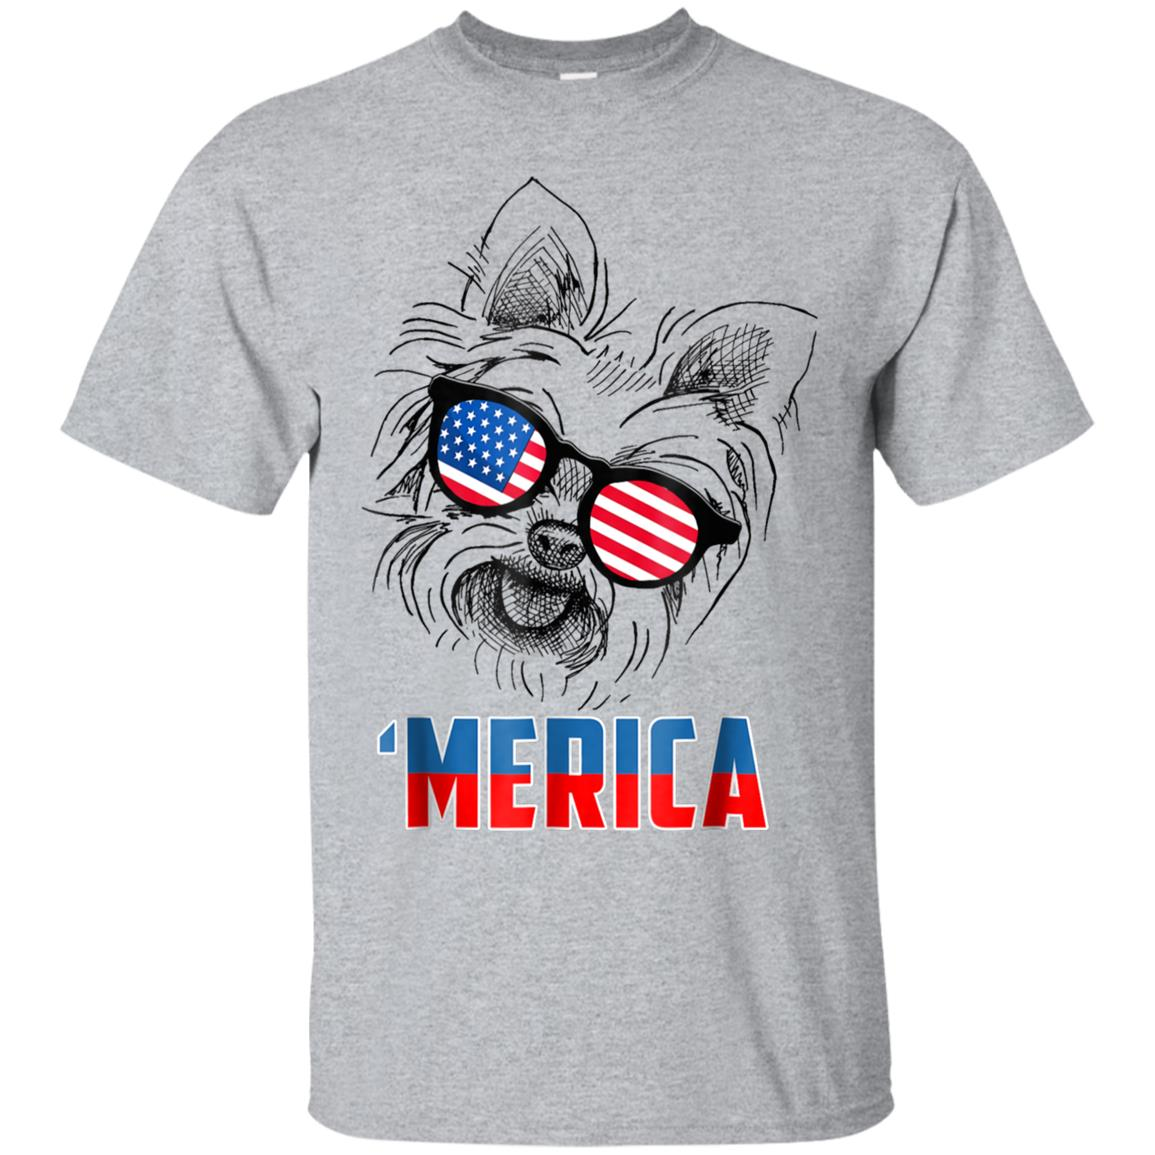 4th of July Patriot Yorkshire Terrier Merica Shirt Dog Lover 99promocode